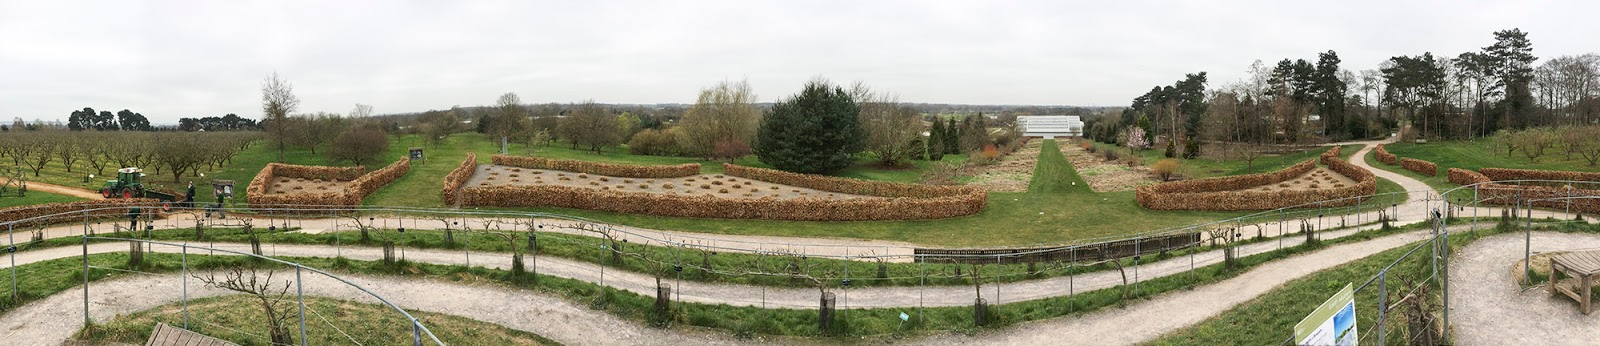 Panorama from the Fruit Mound.  RHS Garden Wisley, 11 March 2014.